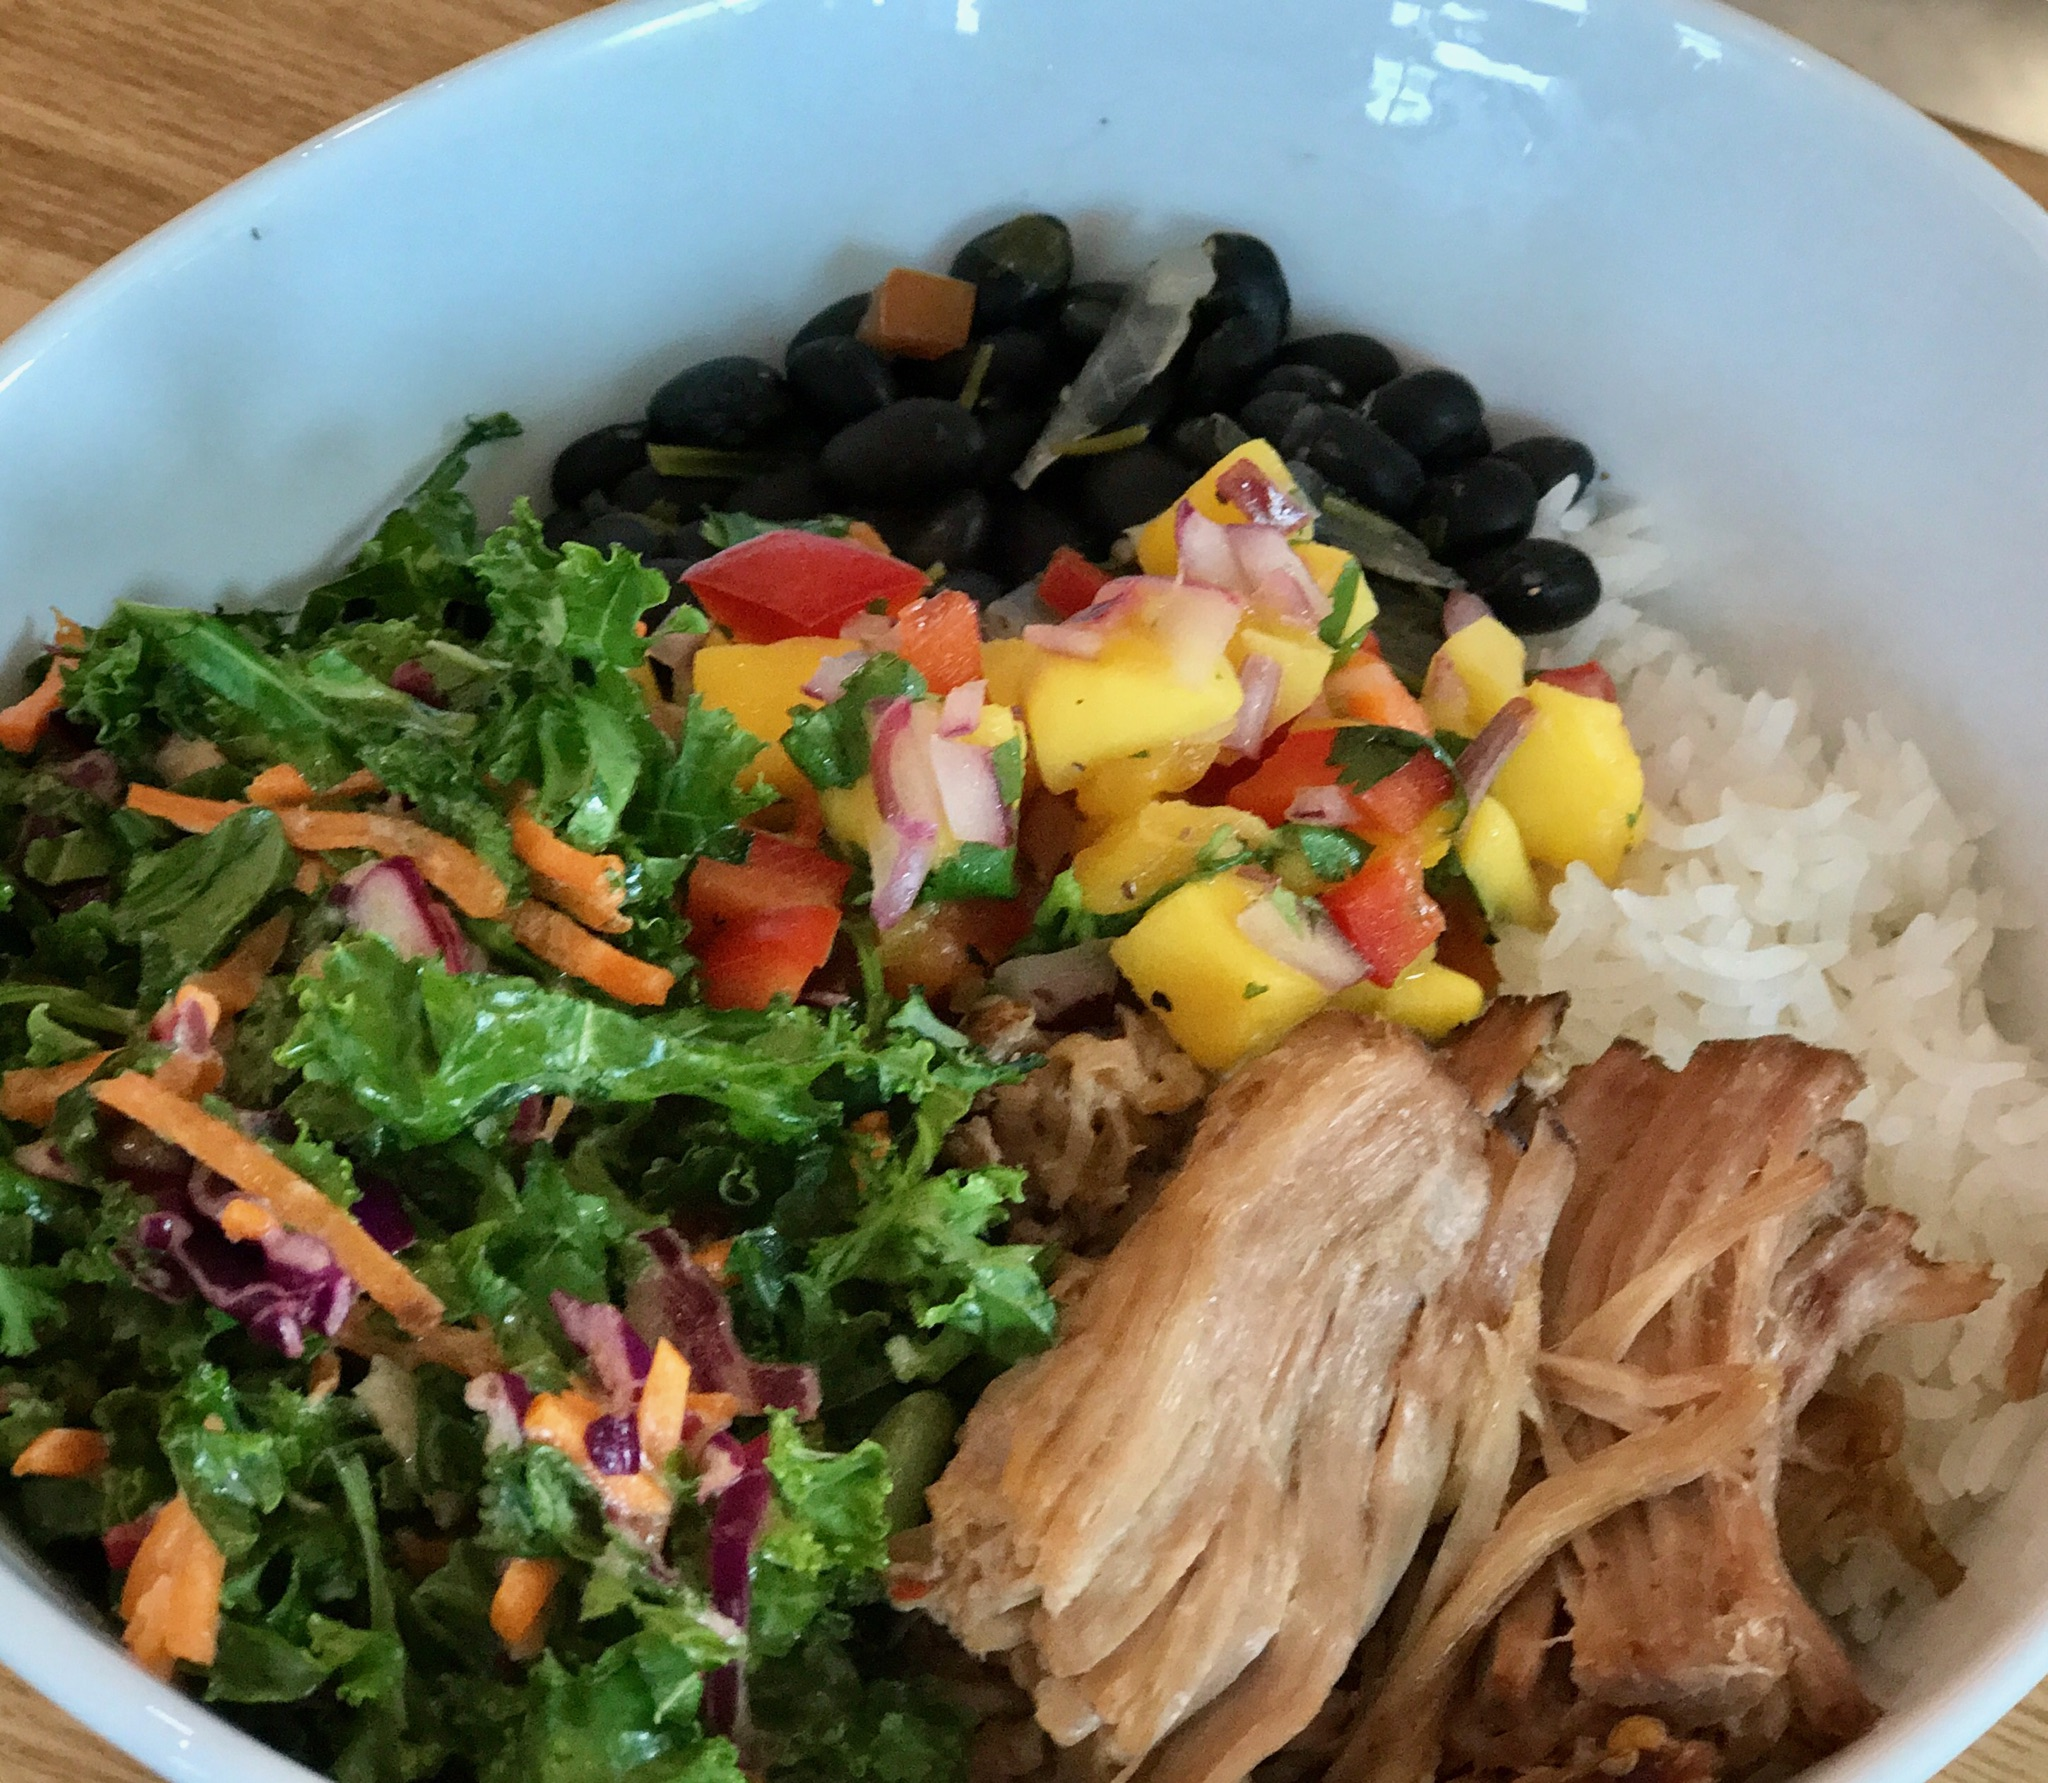 Slow roasted pork, black beans, mango salsa, kale salad, and jasmine rice never disappoints.